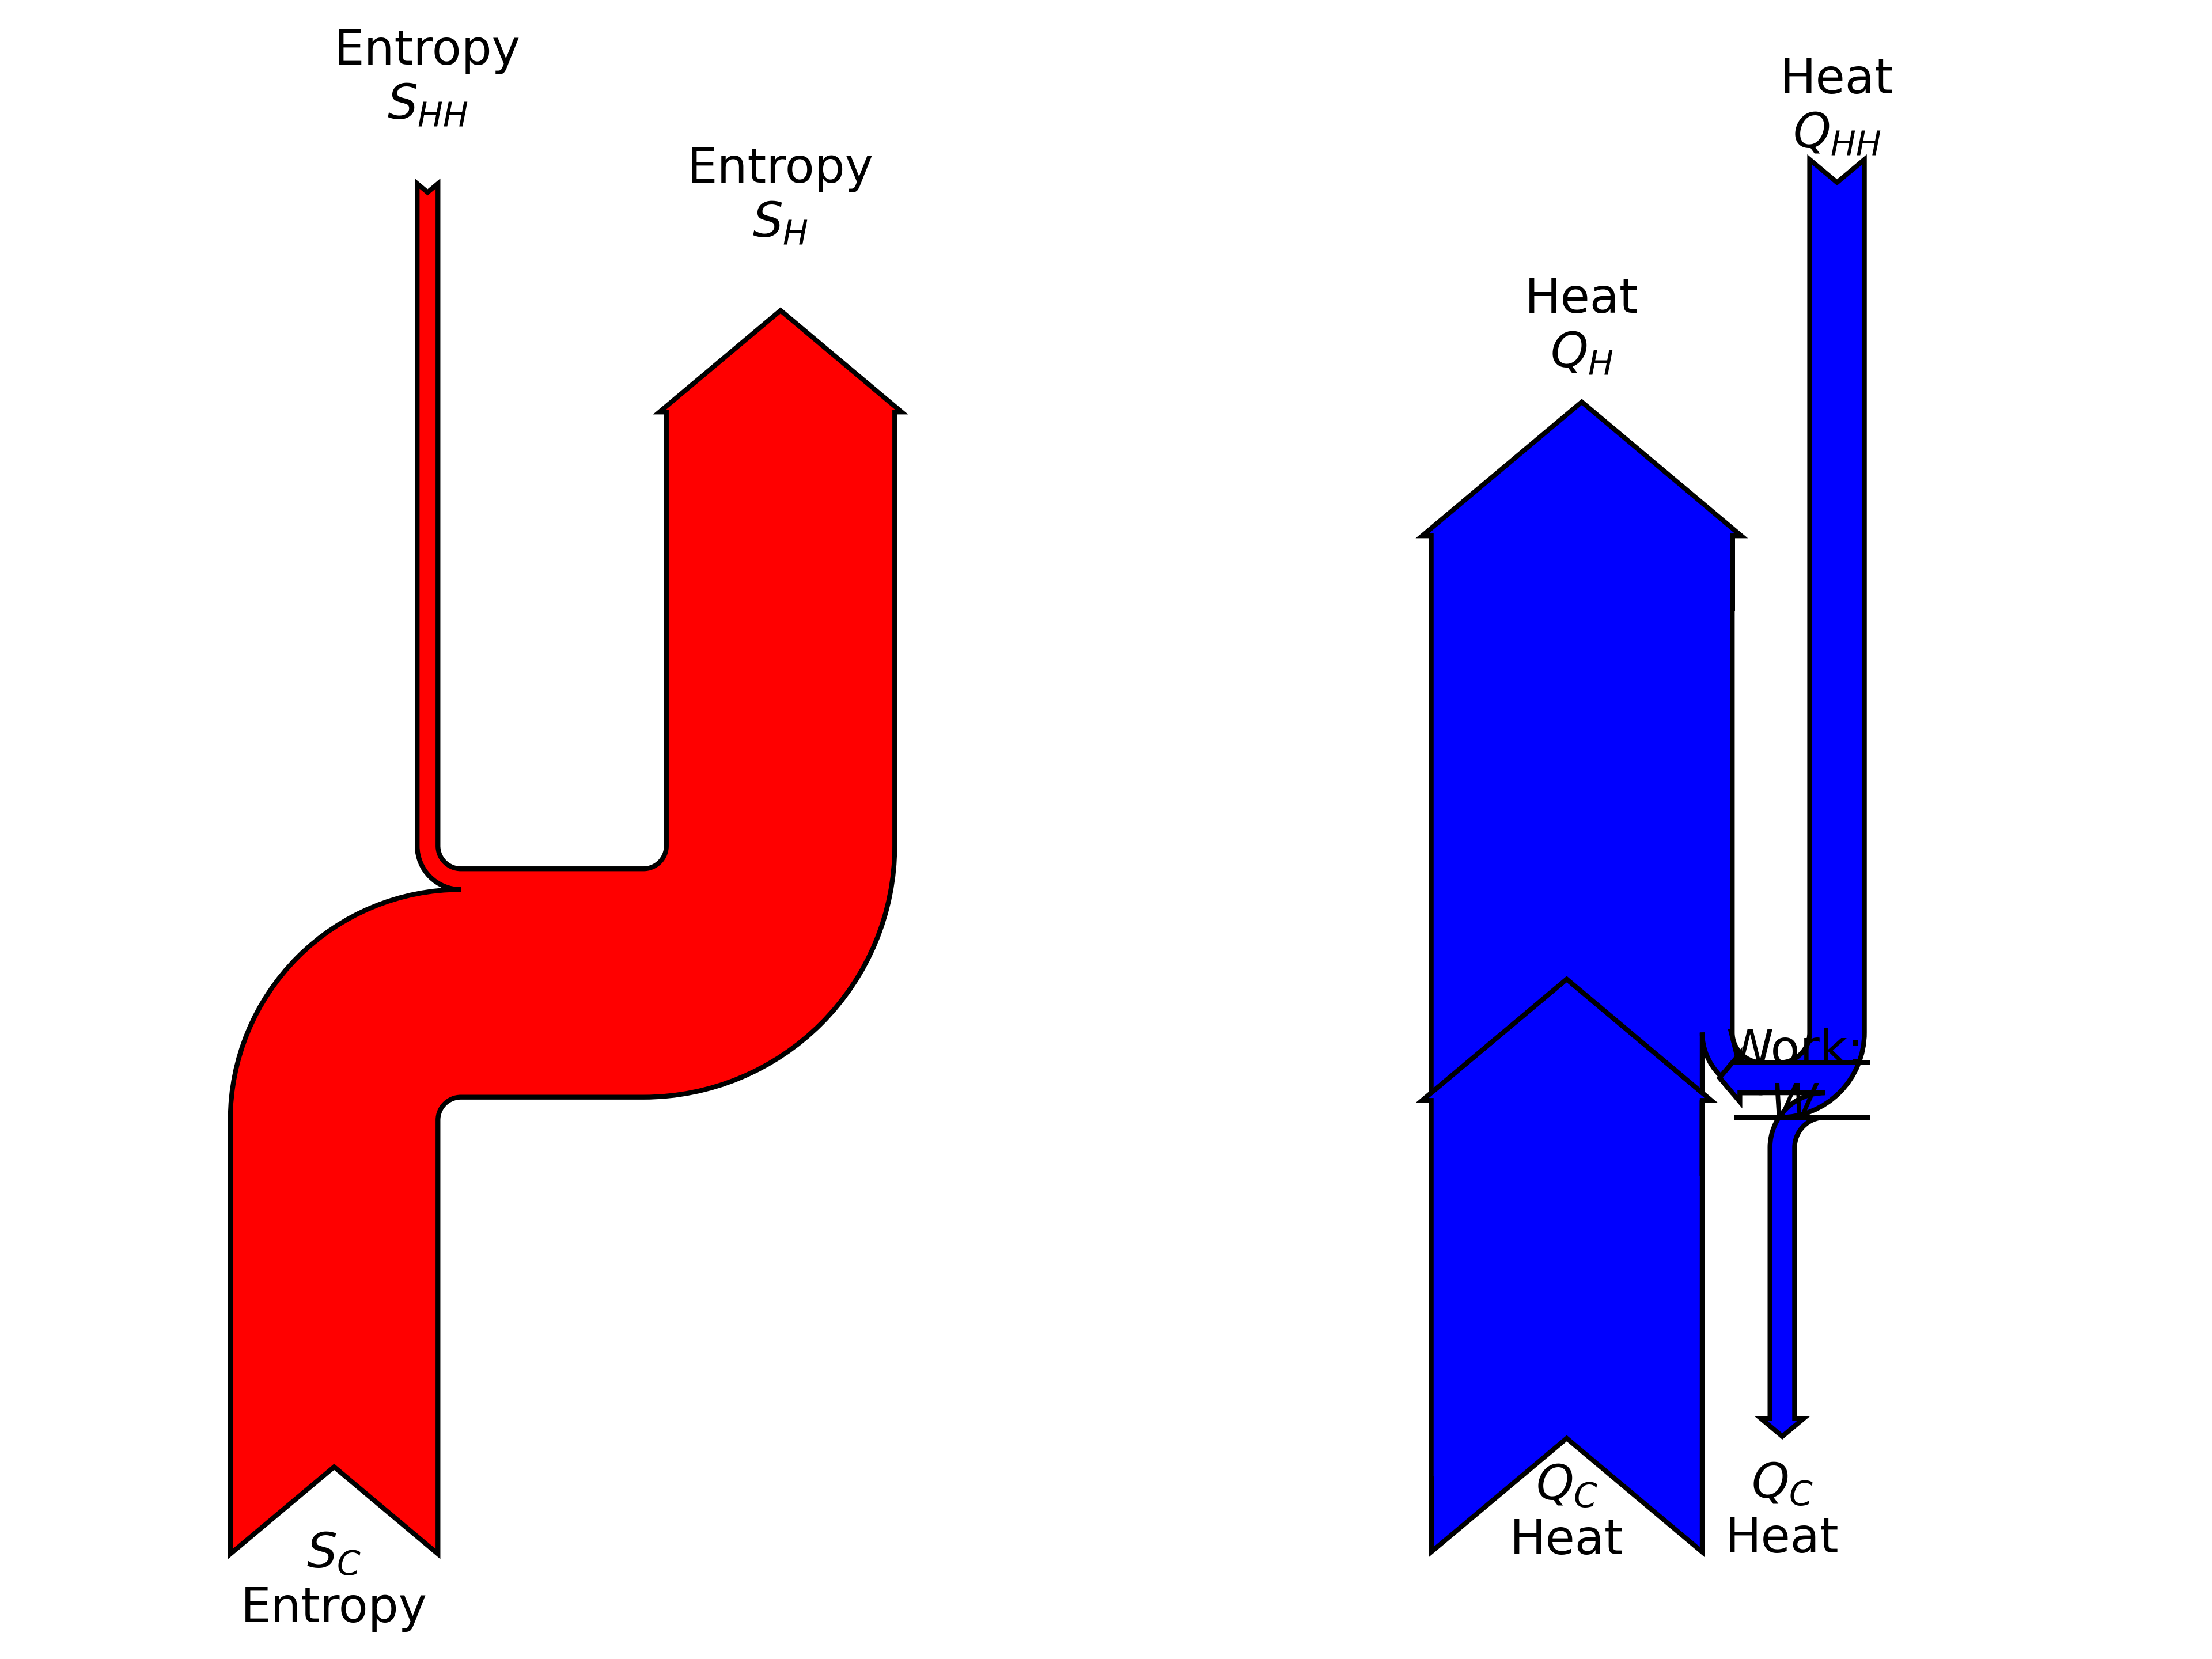 sankey diagram of energy and entropy in the engine-heat-pump combination